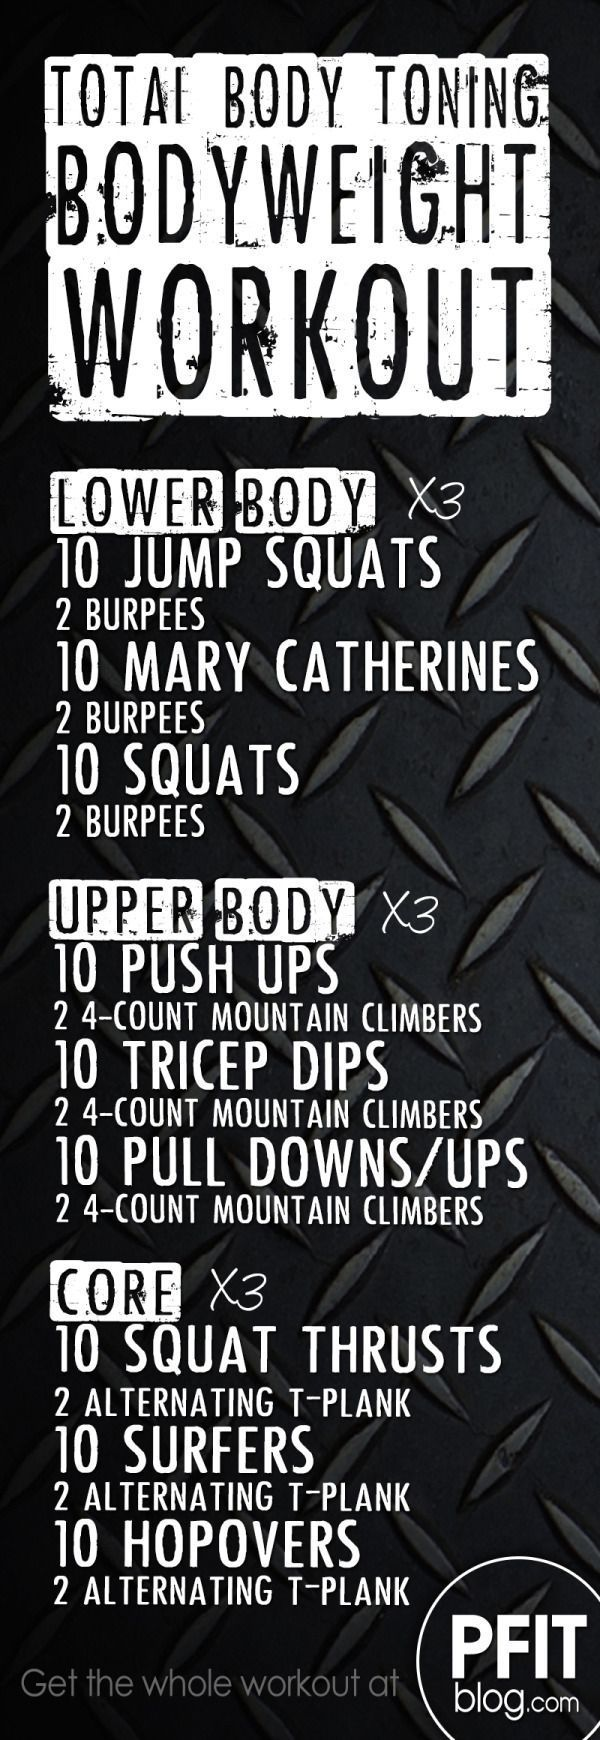 10 Strength and Cardio Workouts